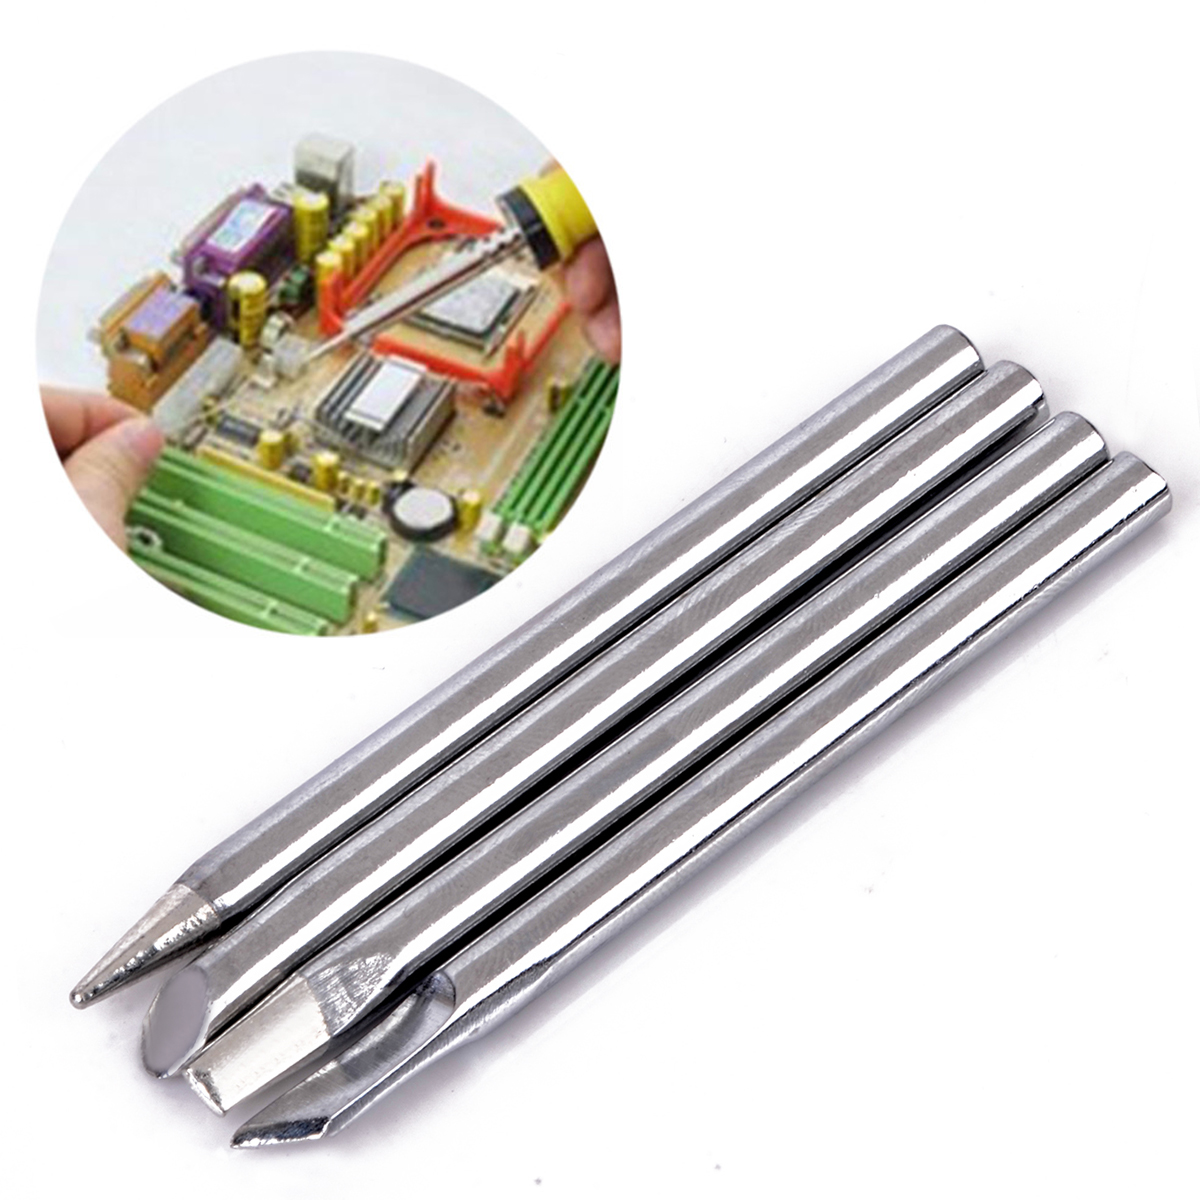 4pcs//lot Soldering Iron Tips 40W Welding Tip For Soldering Repair Station 4mm x 65mm